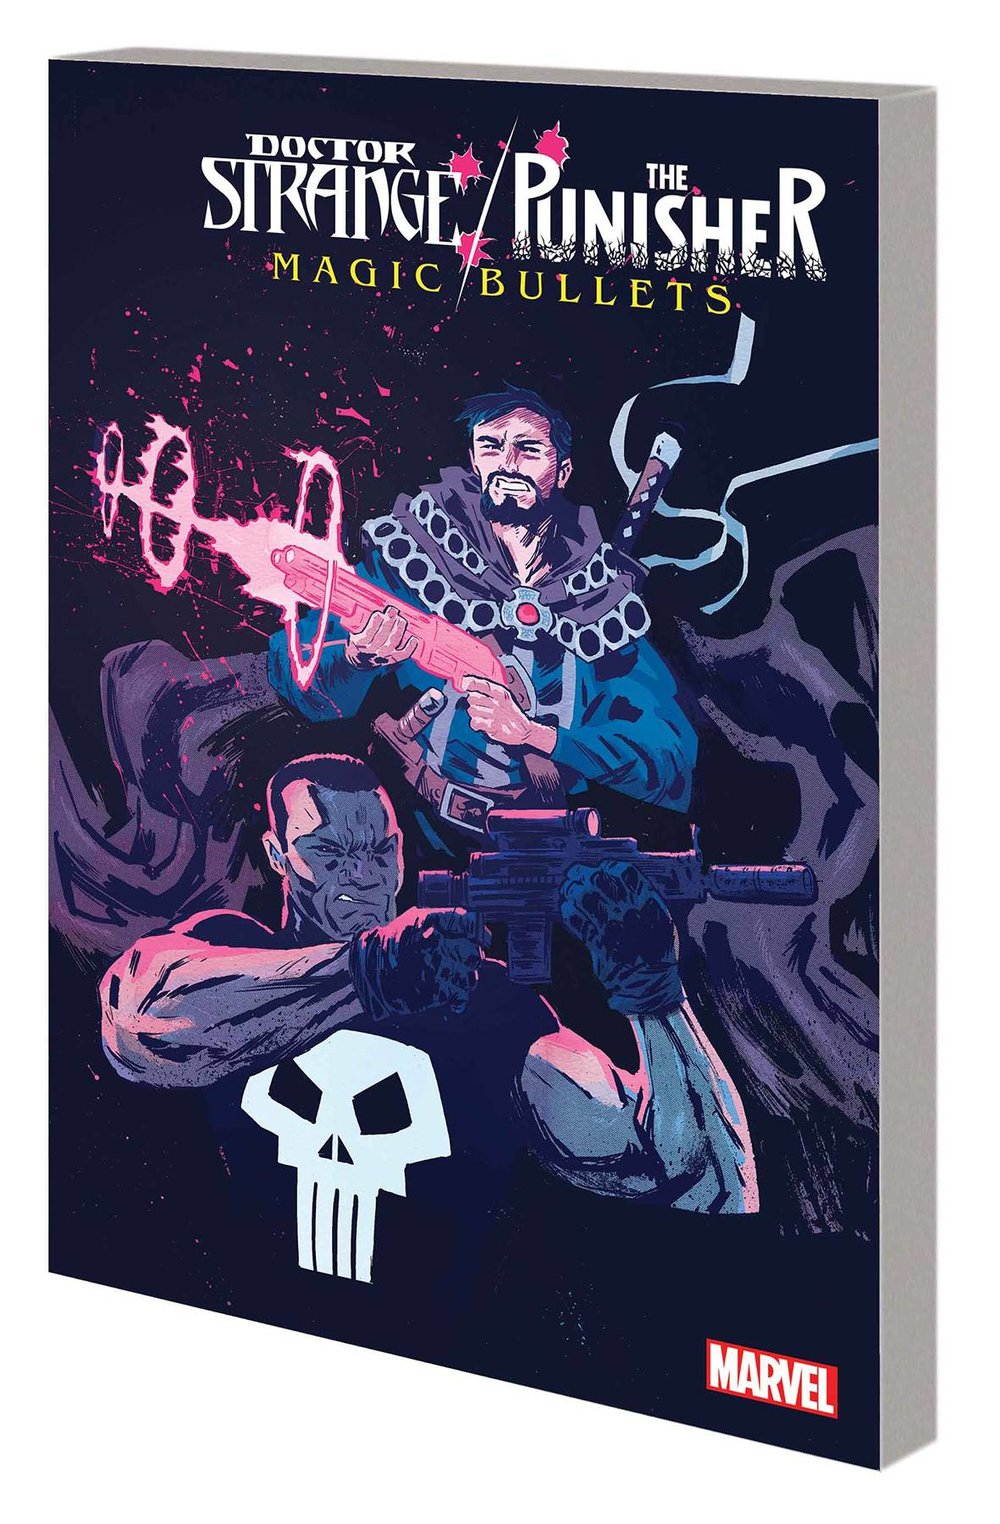 DOCTOR STRANGE PUNISHER TP MAGIC BULLETS.jpg